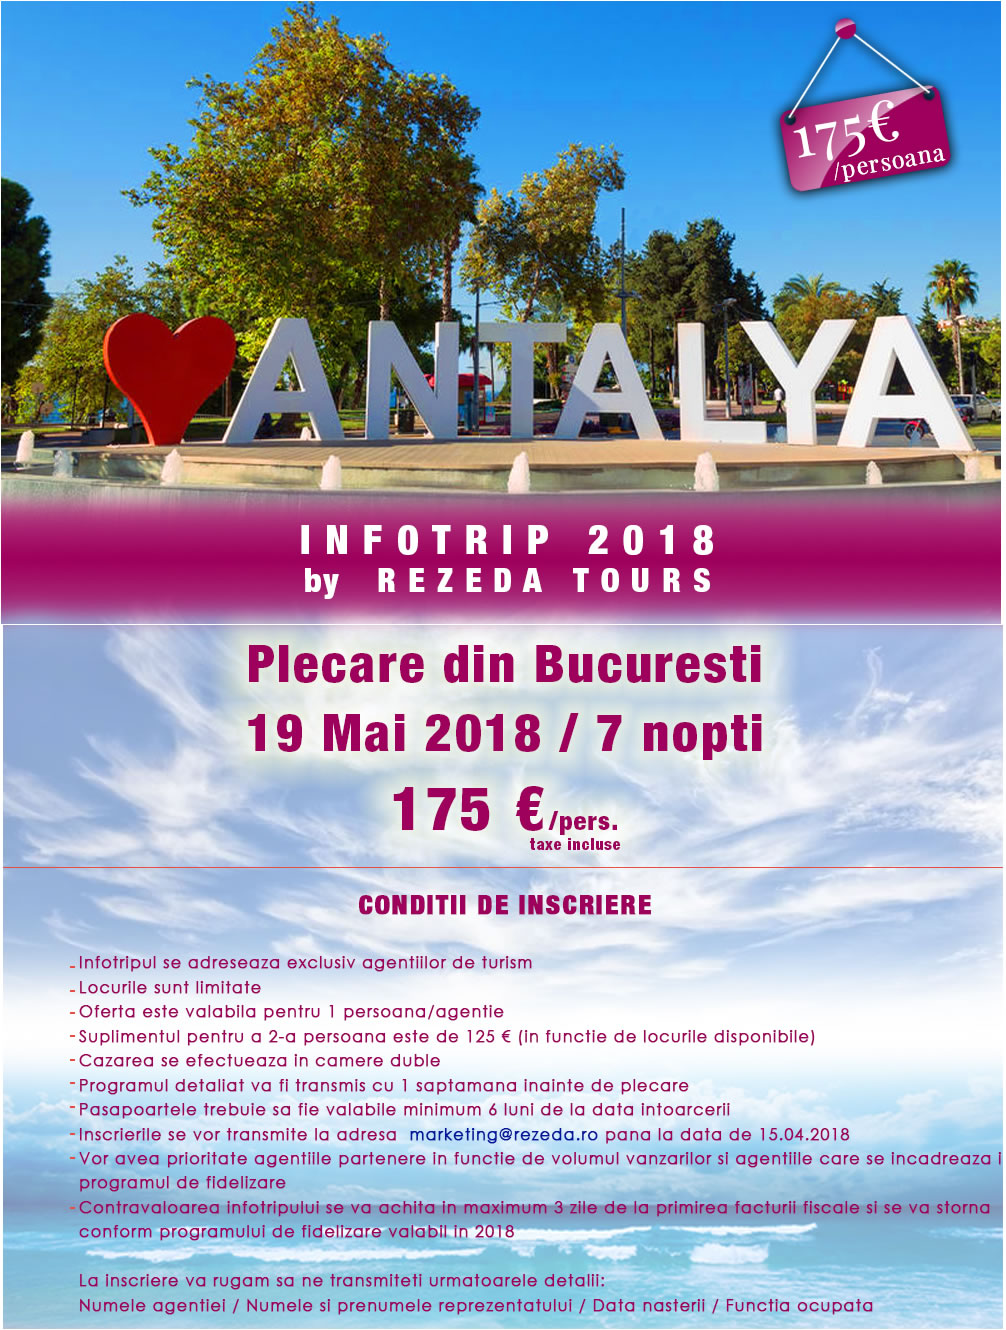 Infotrip Antalya 2018 by Rezeda Tours